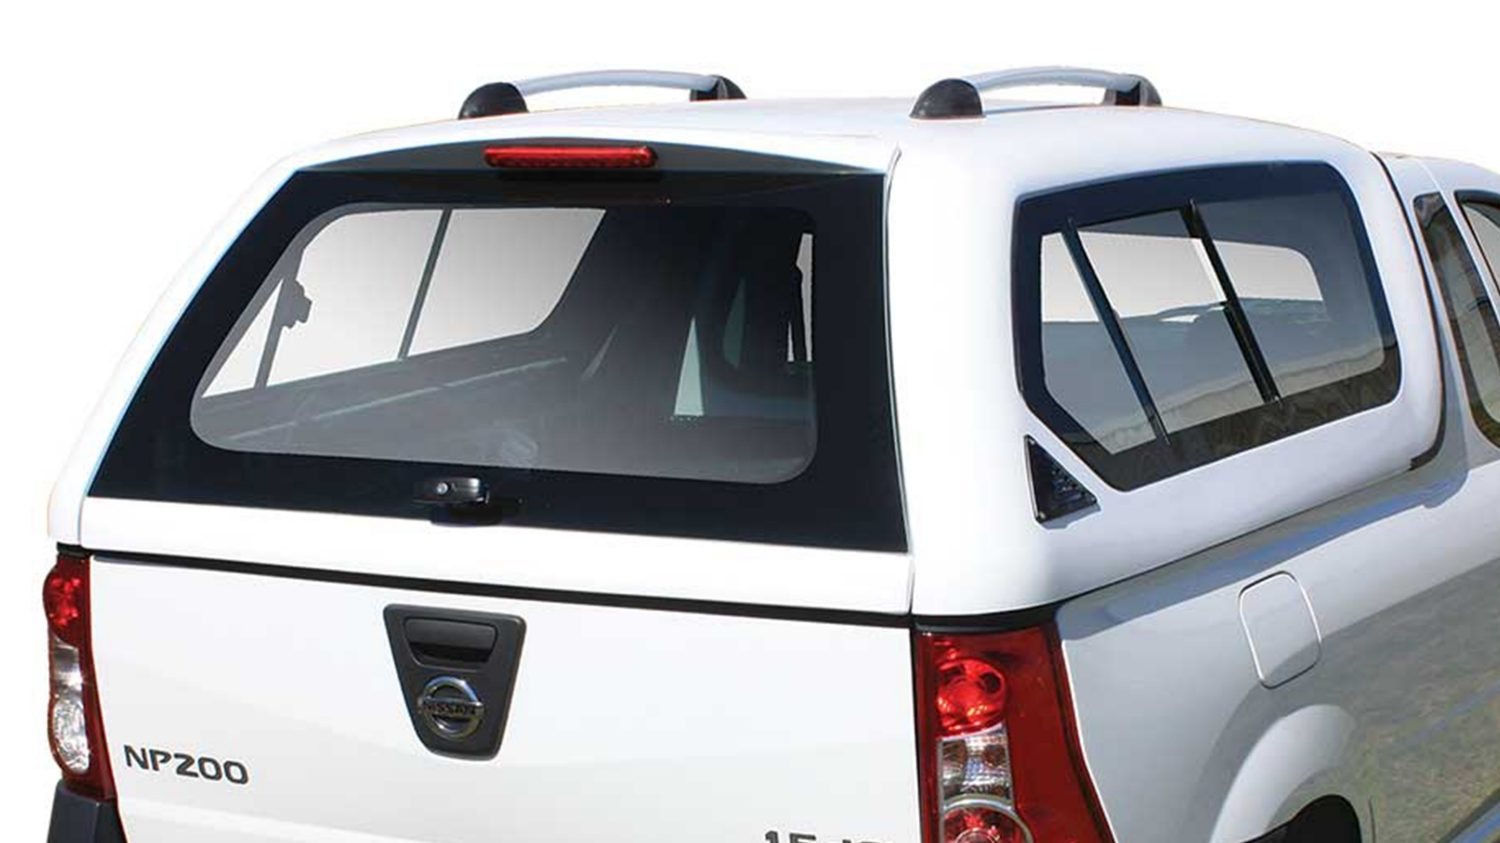 Nissan NP200 | Nissan South Africa